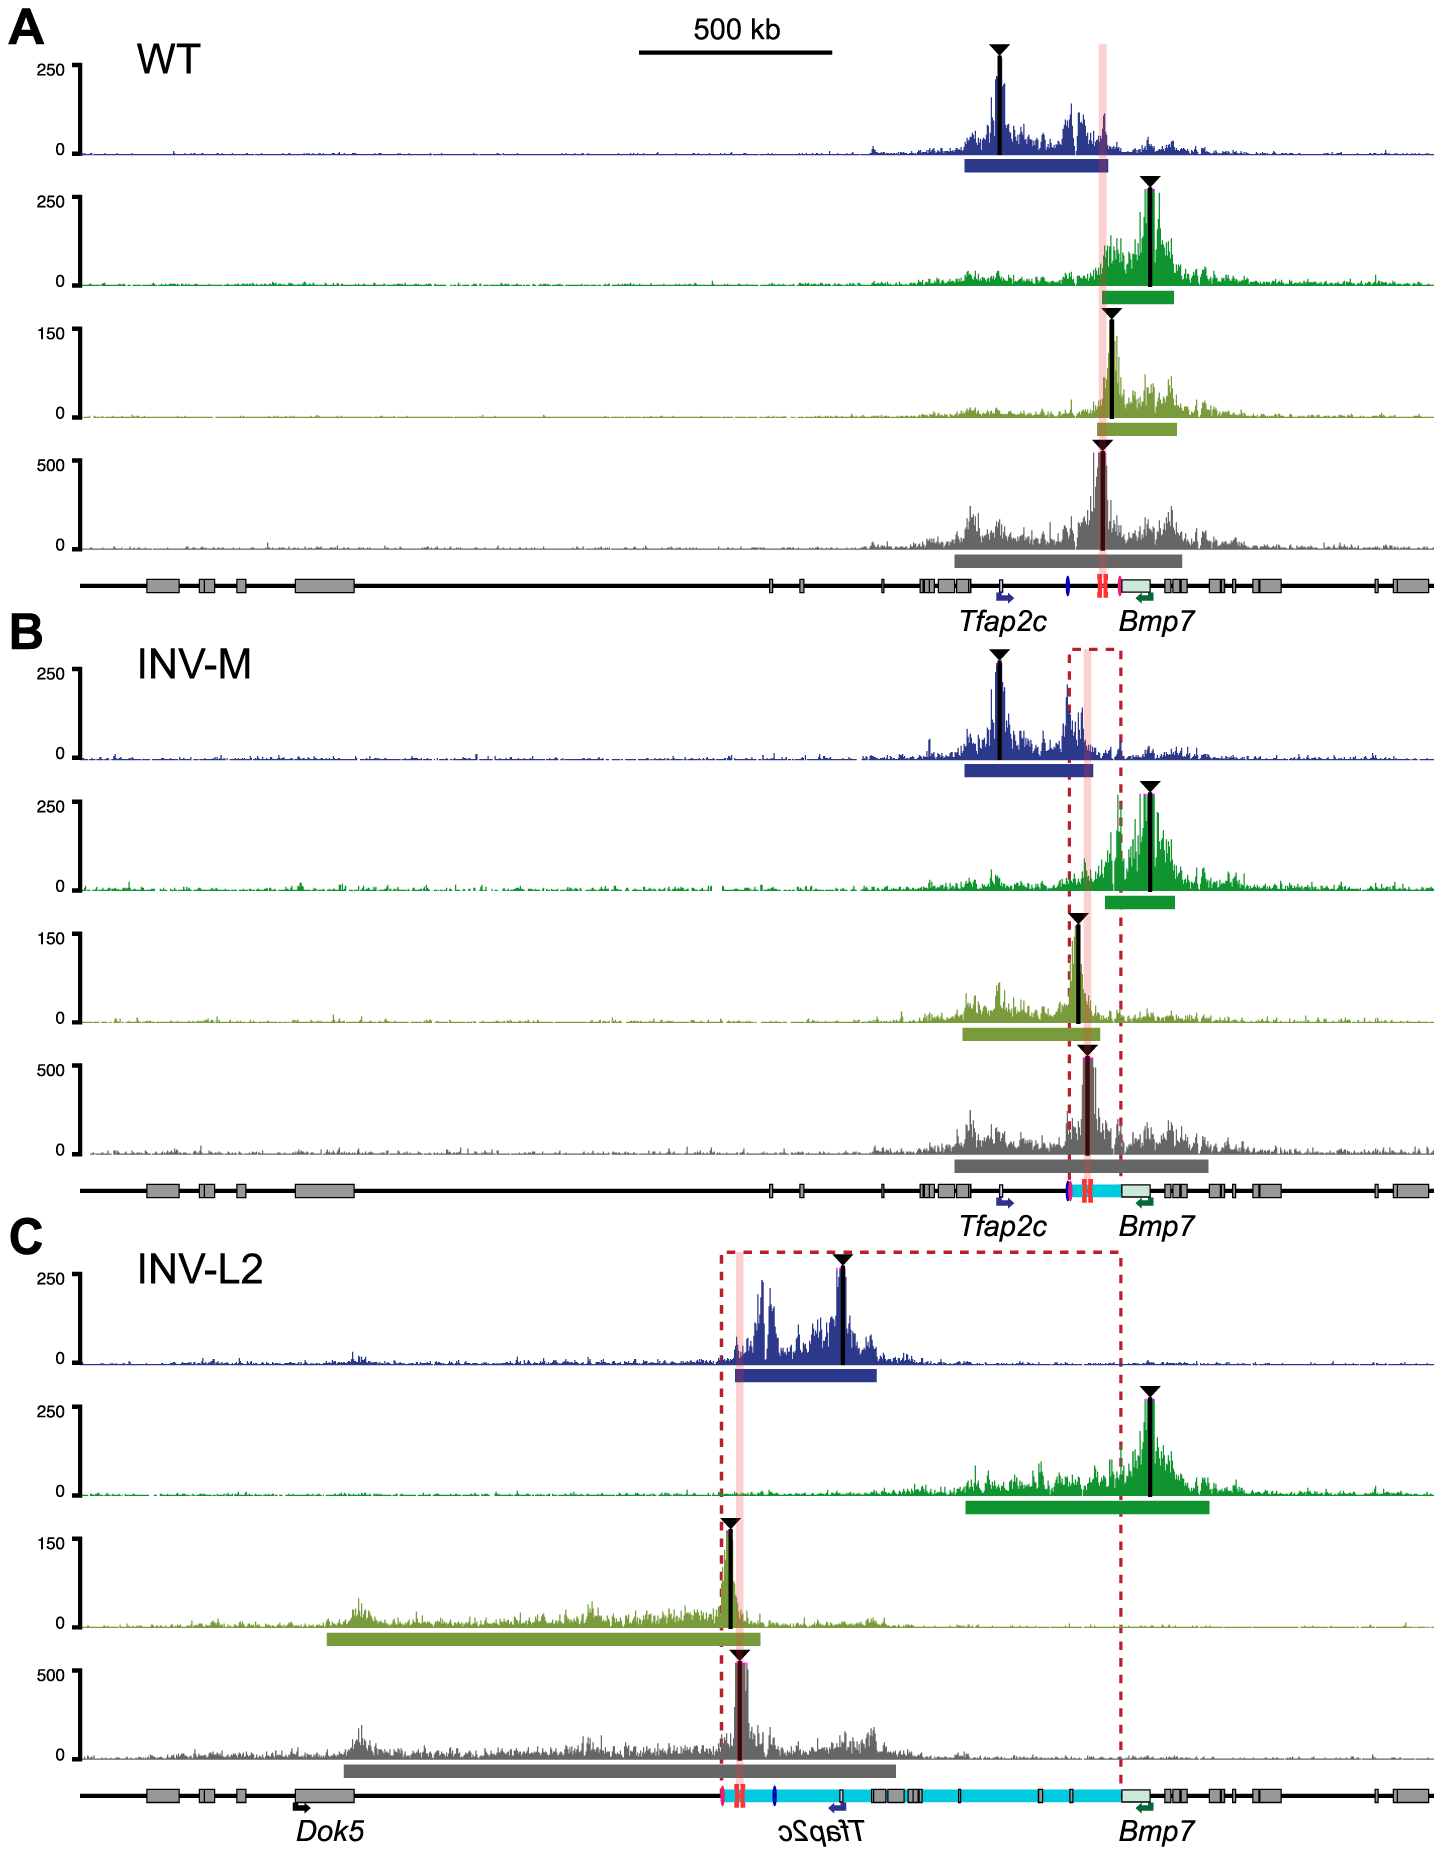 Redistribution of the interaction domains upon chromosomal inversions.